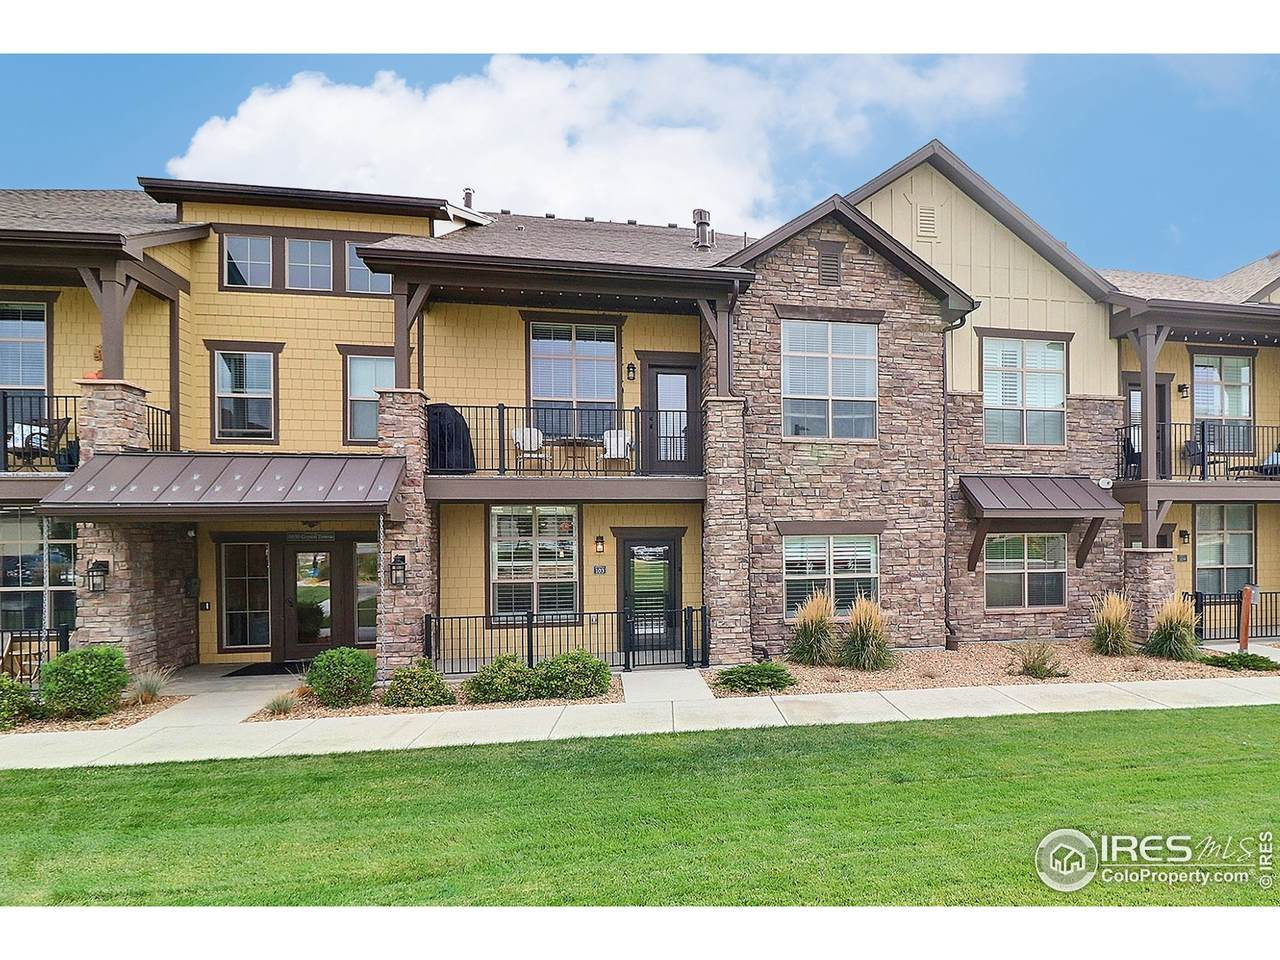 6650 Crystal Downs Dr - Photo 1